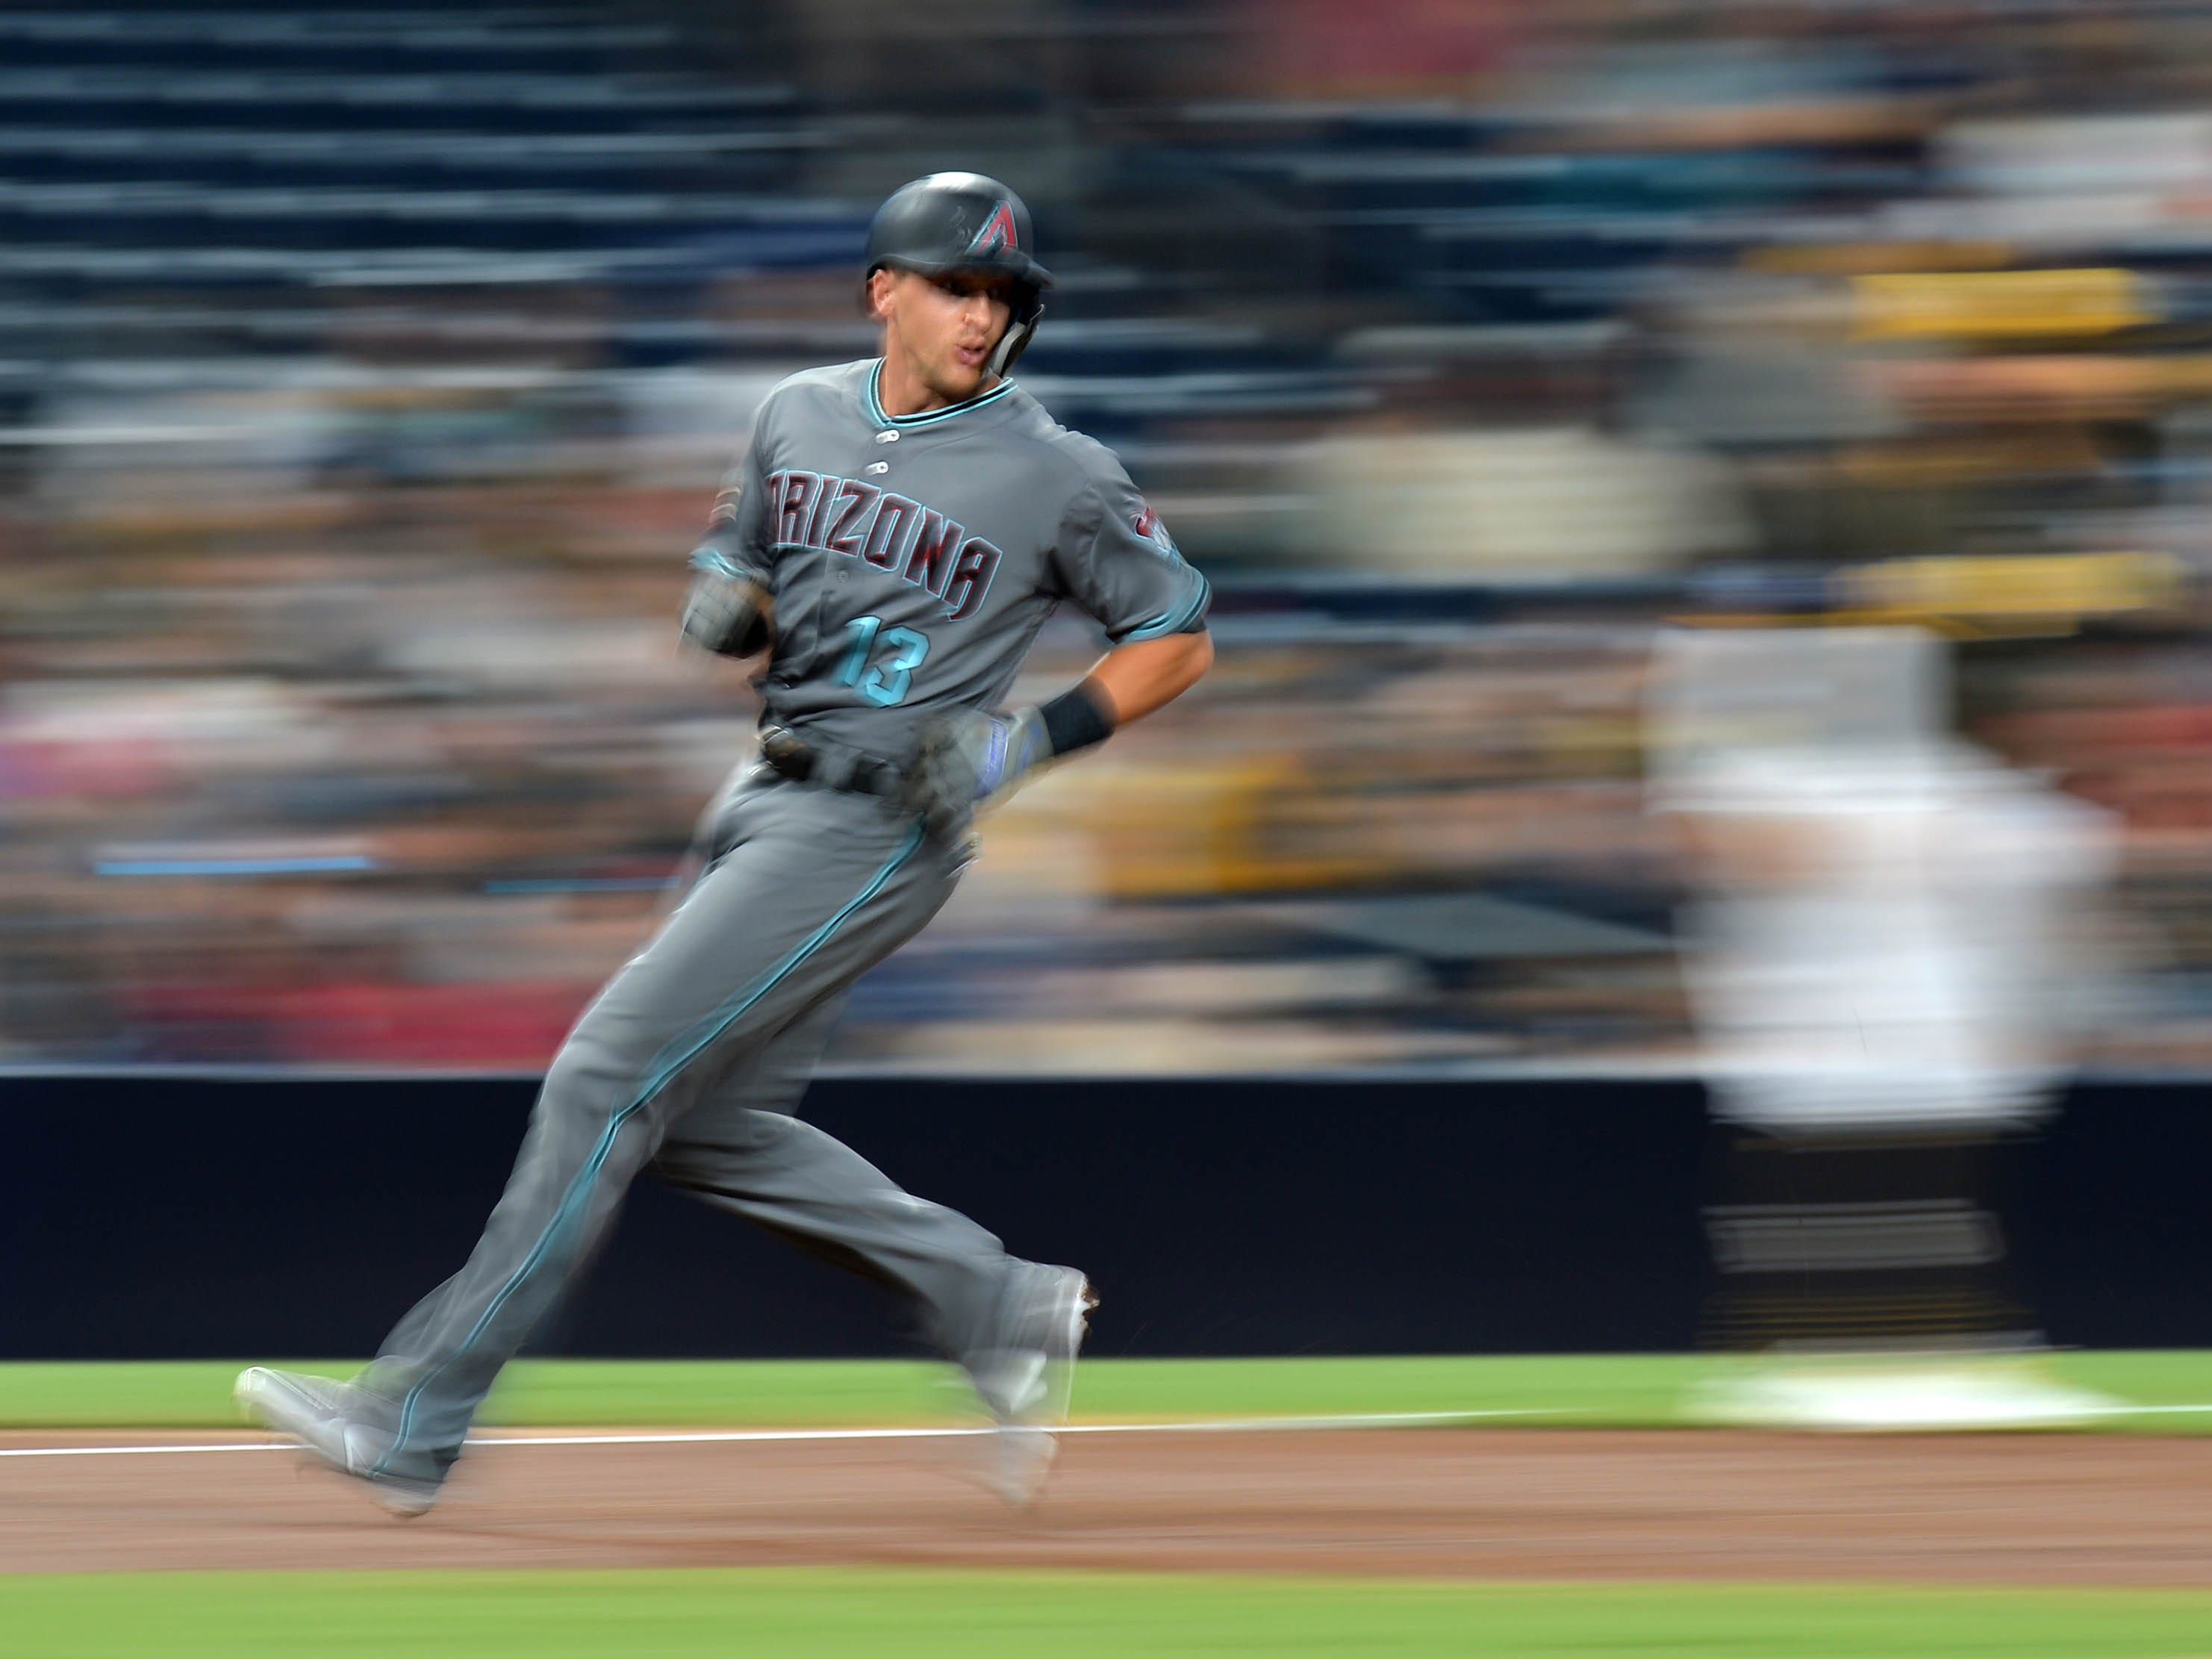 Aug 17, 2018: Arizona Diamondbacks shortstop Nick Ahmed (13) advances to third on a double by second baseman Ketel Marte (not pictured) during the second inning against the San Diego Padres at Petco Park.